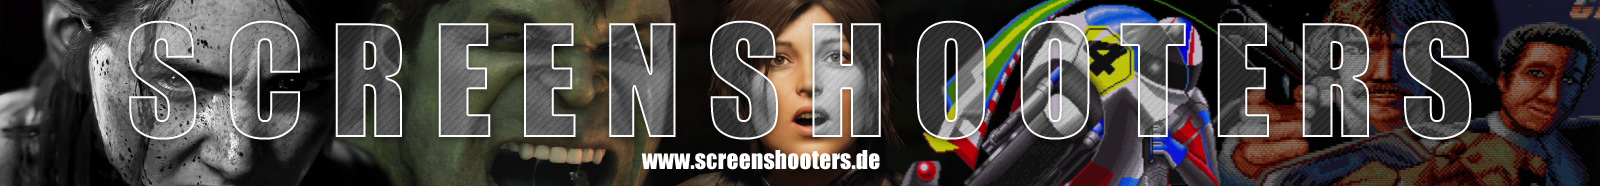 Screenshooters